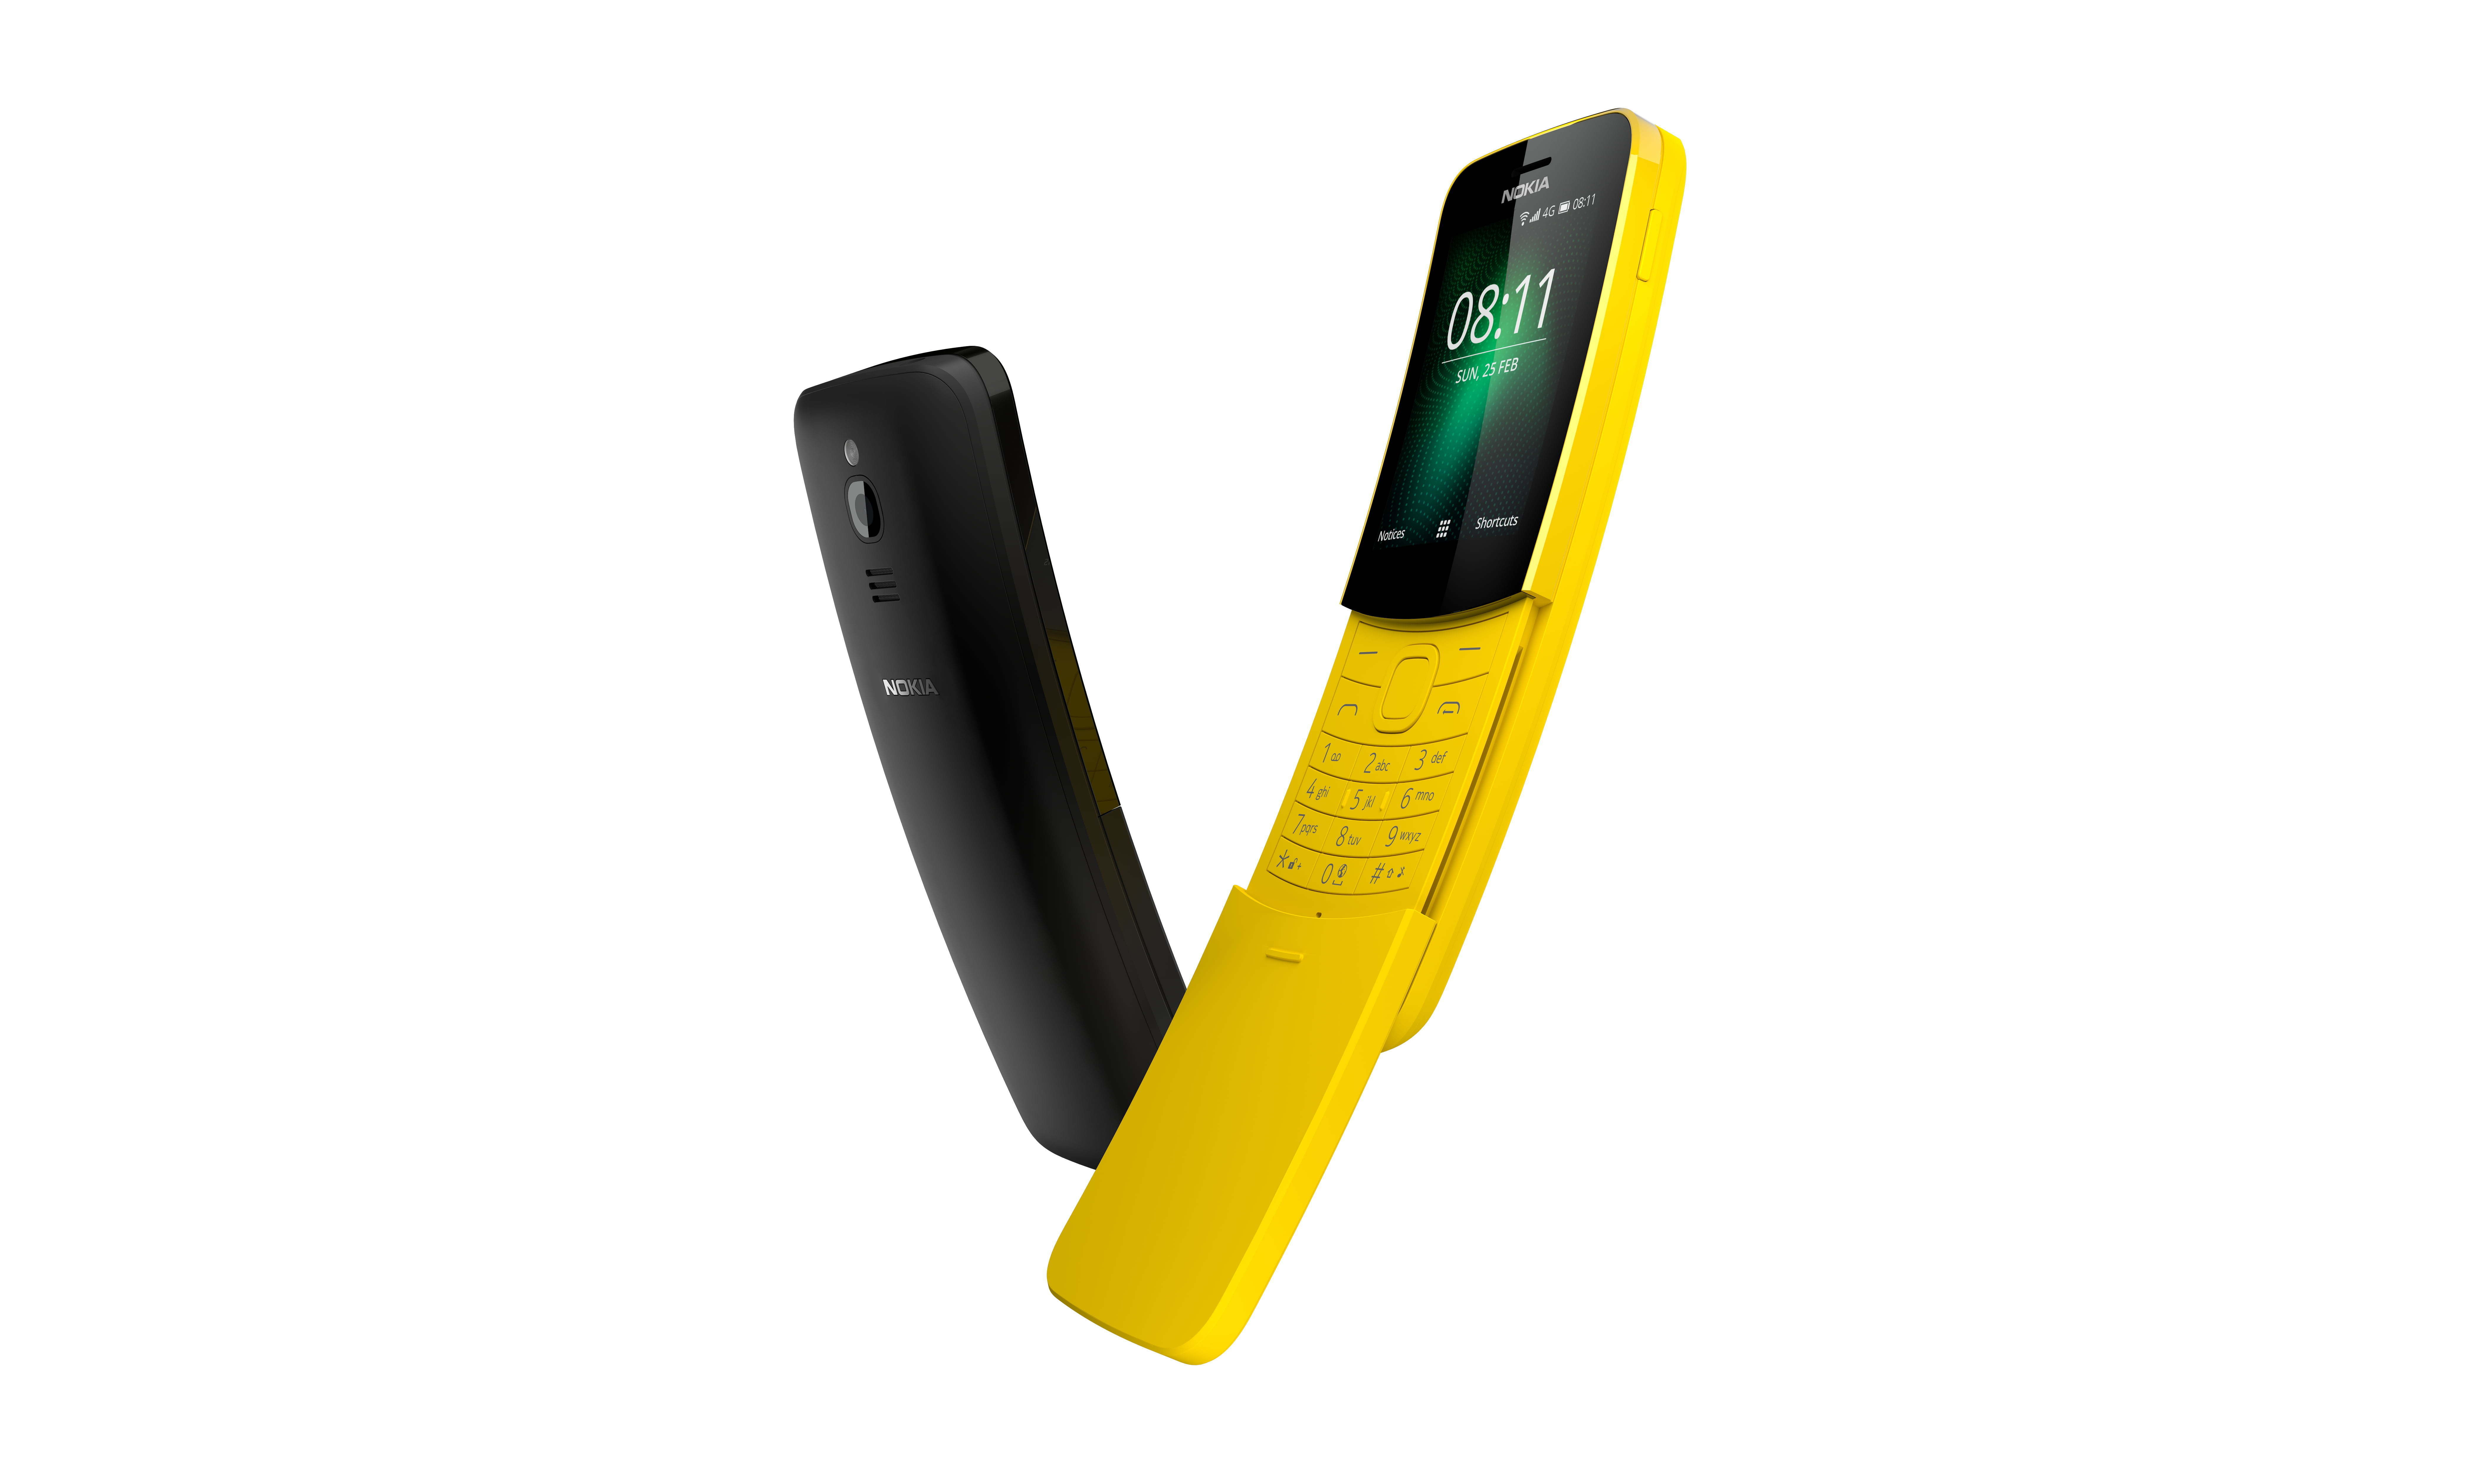 New from Nokia - The Nokia 8110 - The Matrix (phone) Reloaded